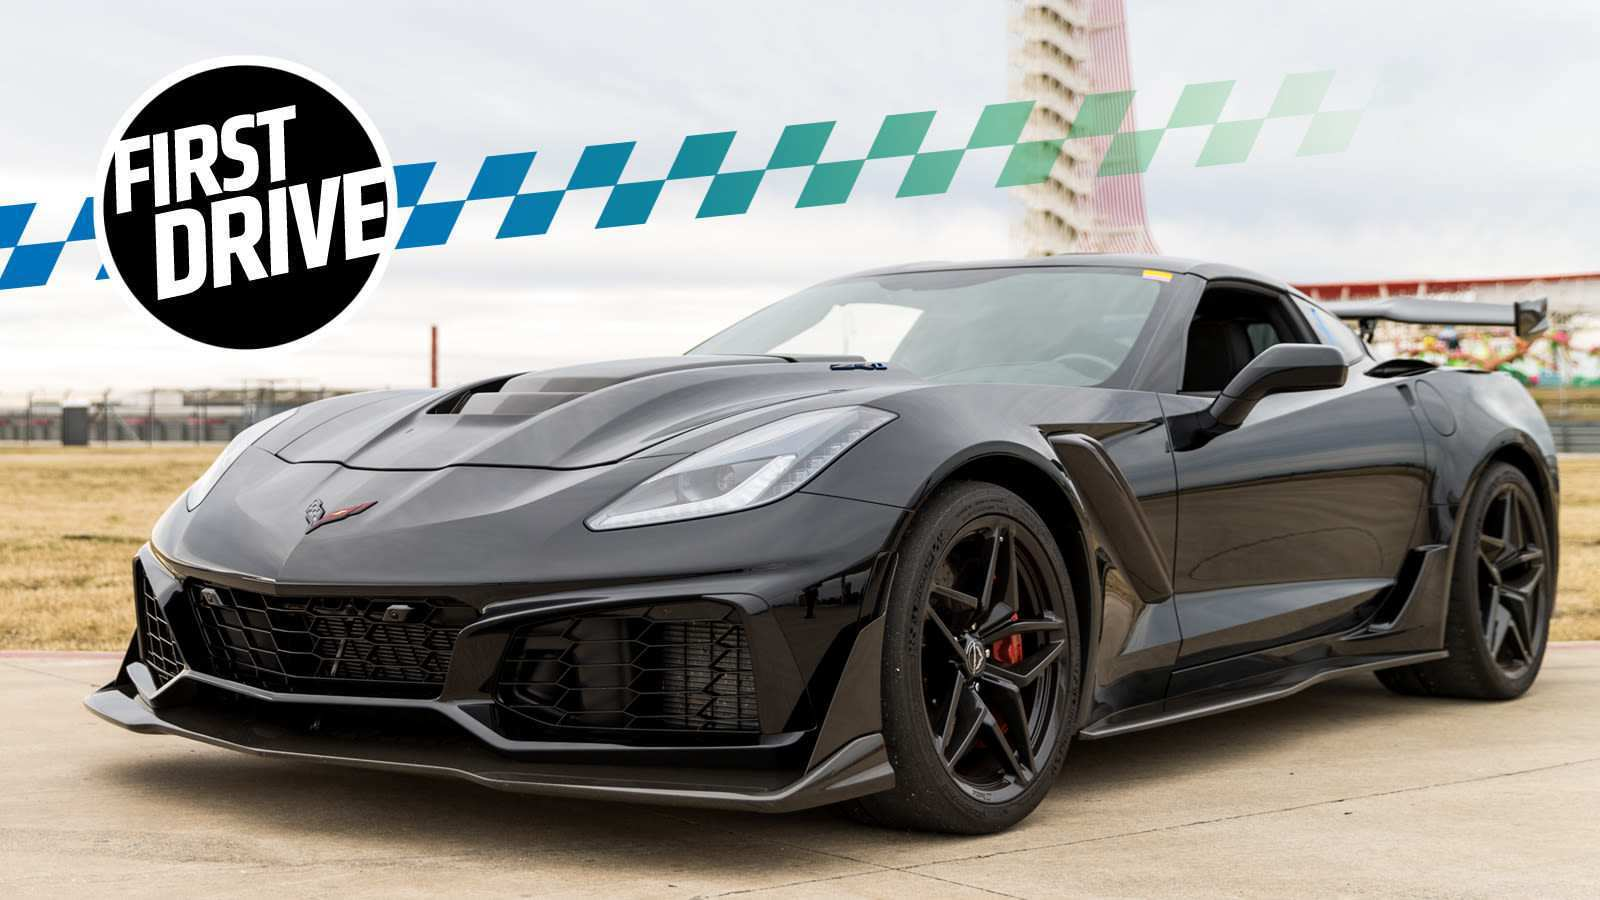 98 The 2019 Chevrolet Corvette Zr1 Model